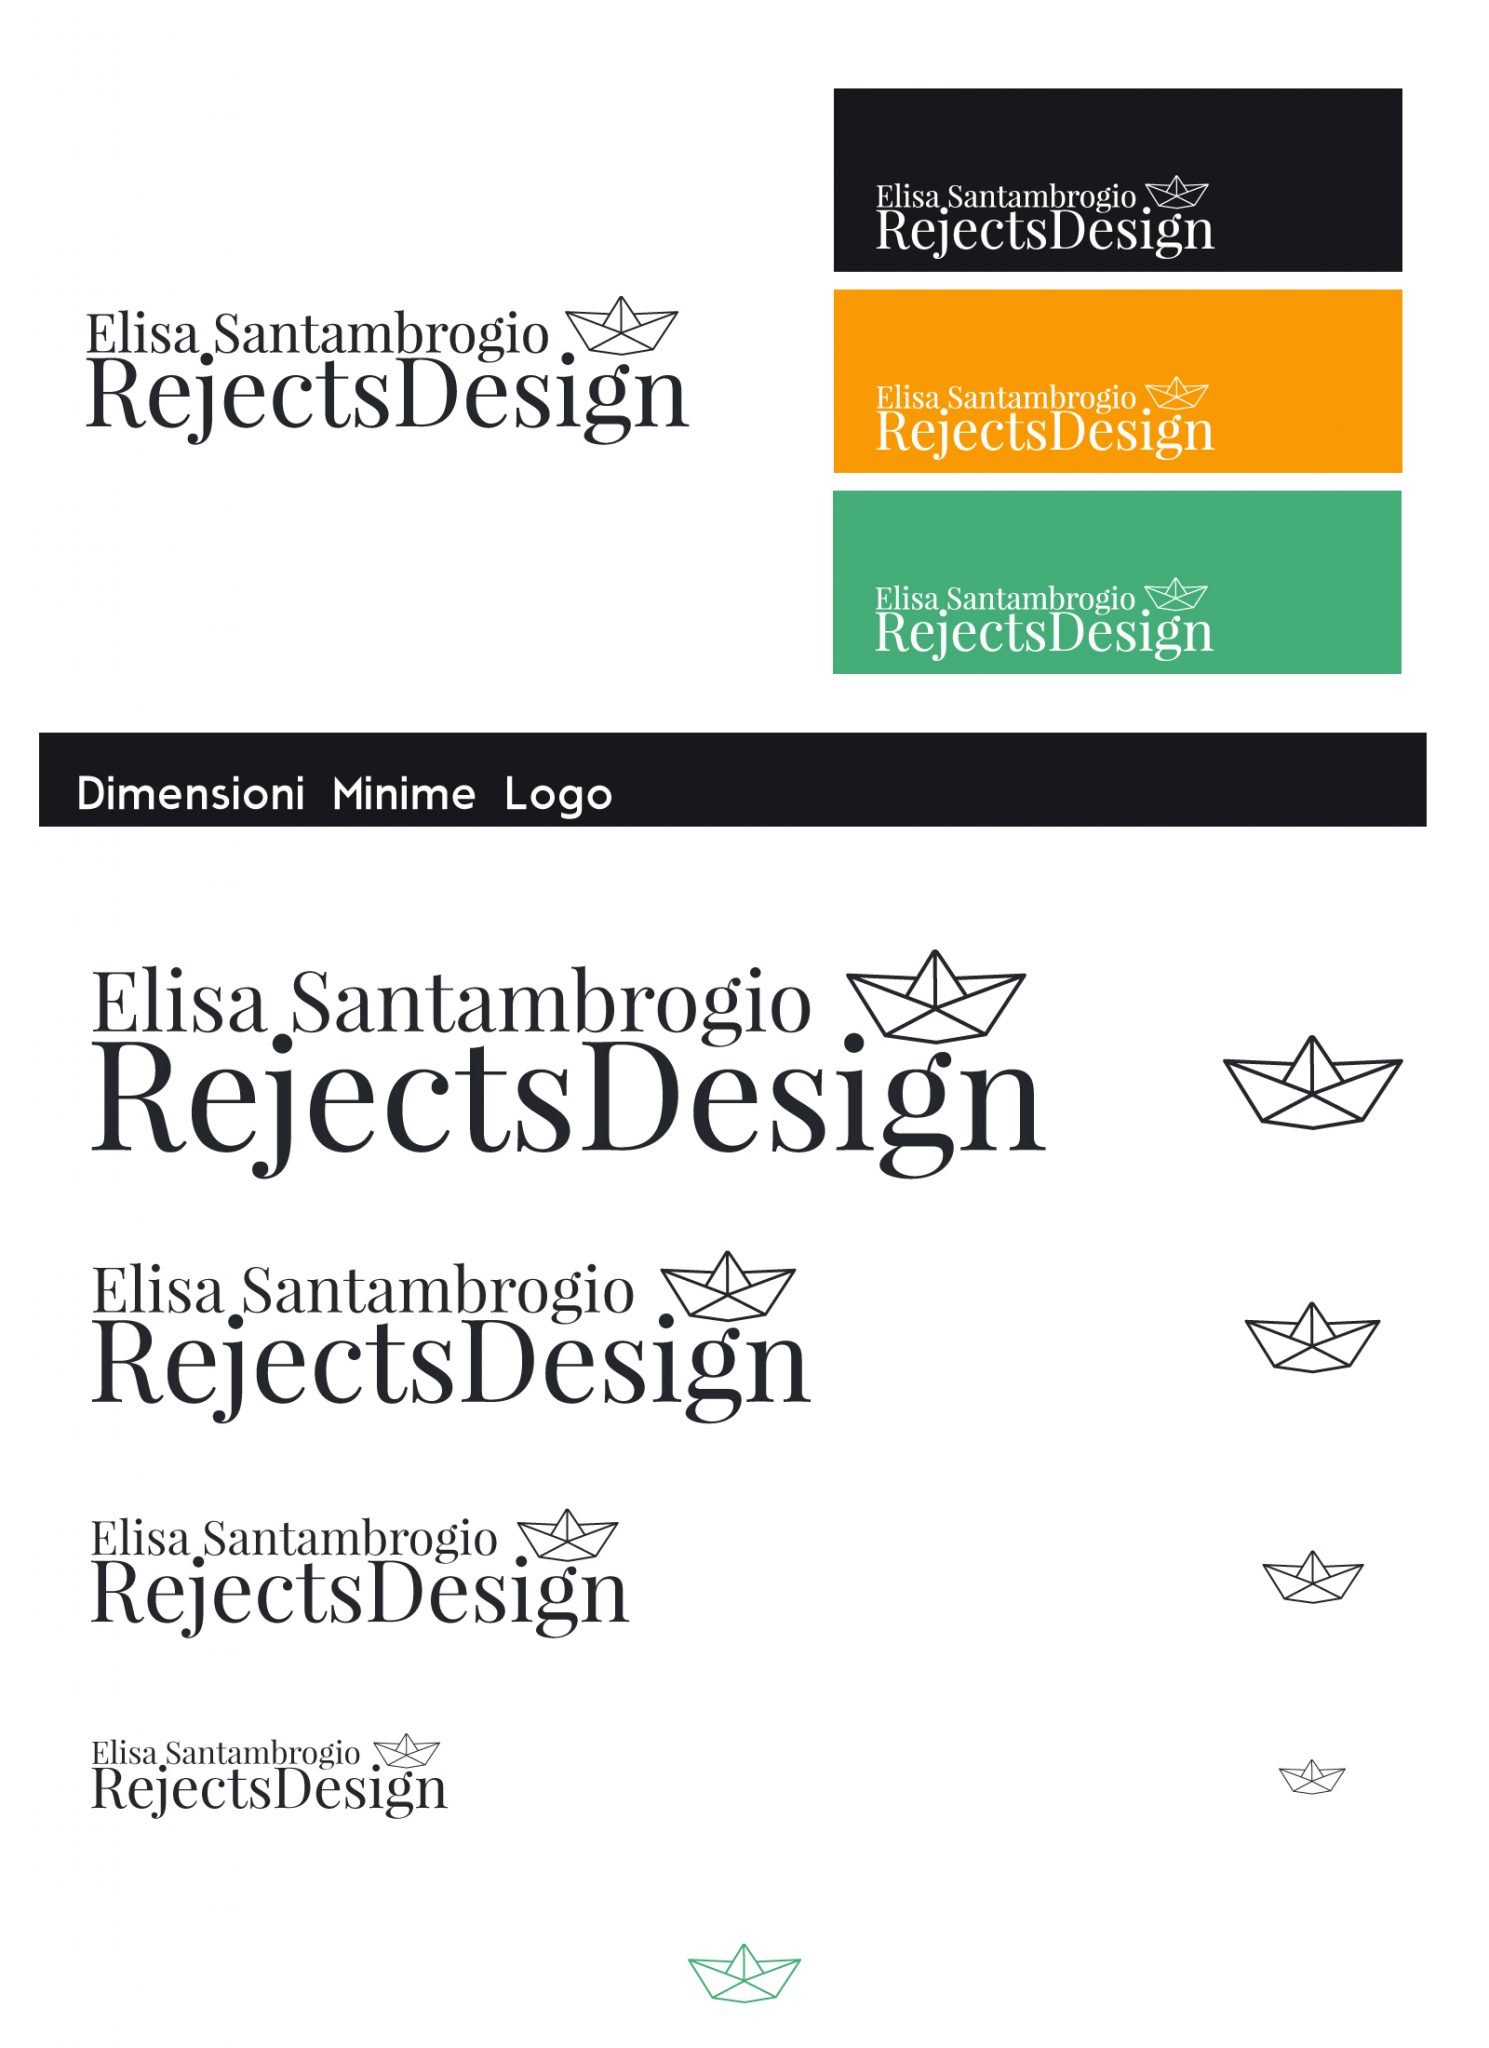 Rejects Design logo